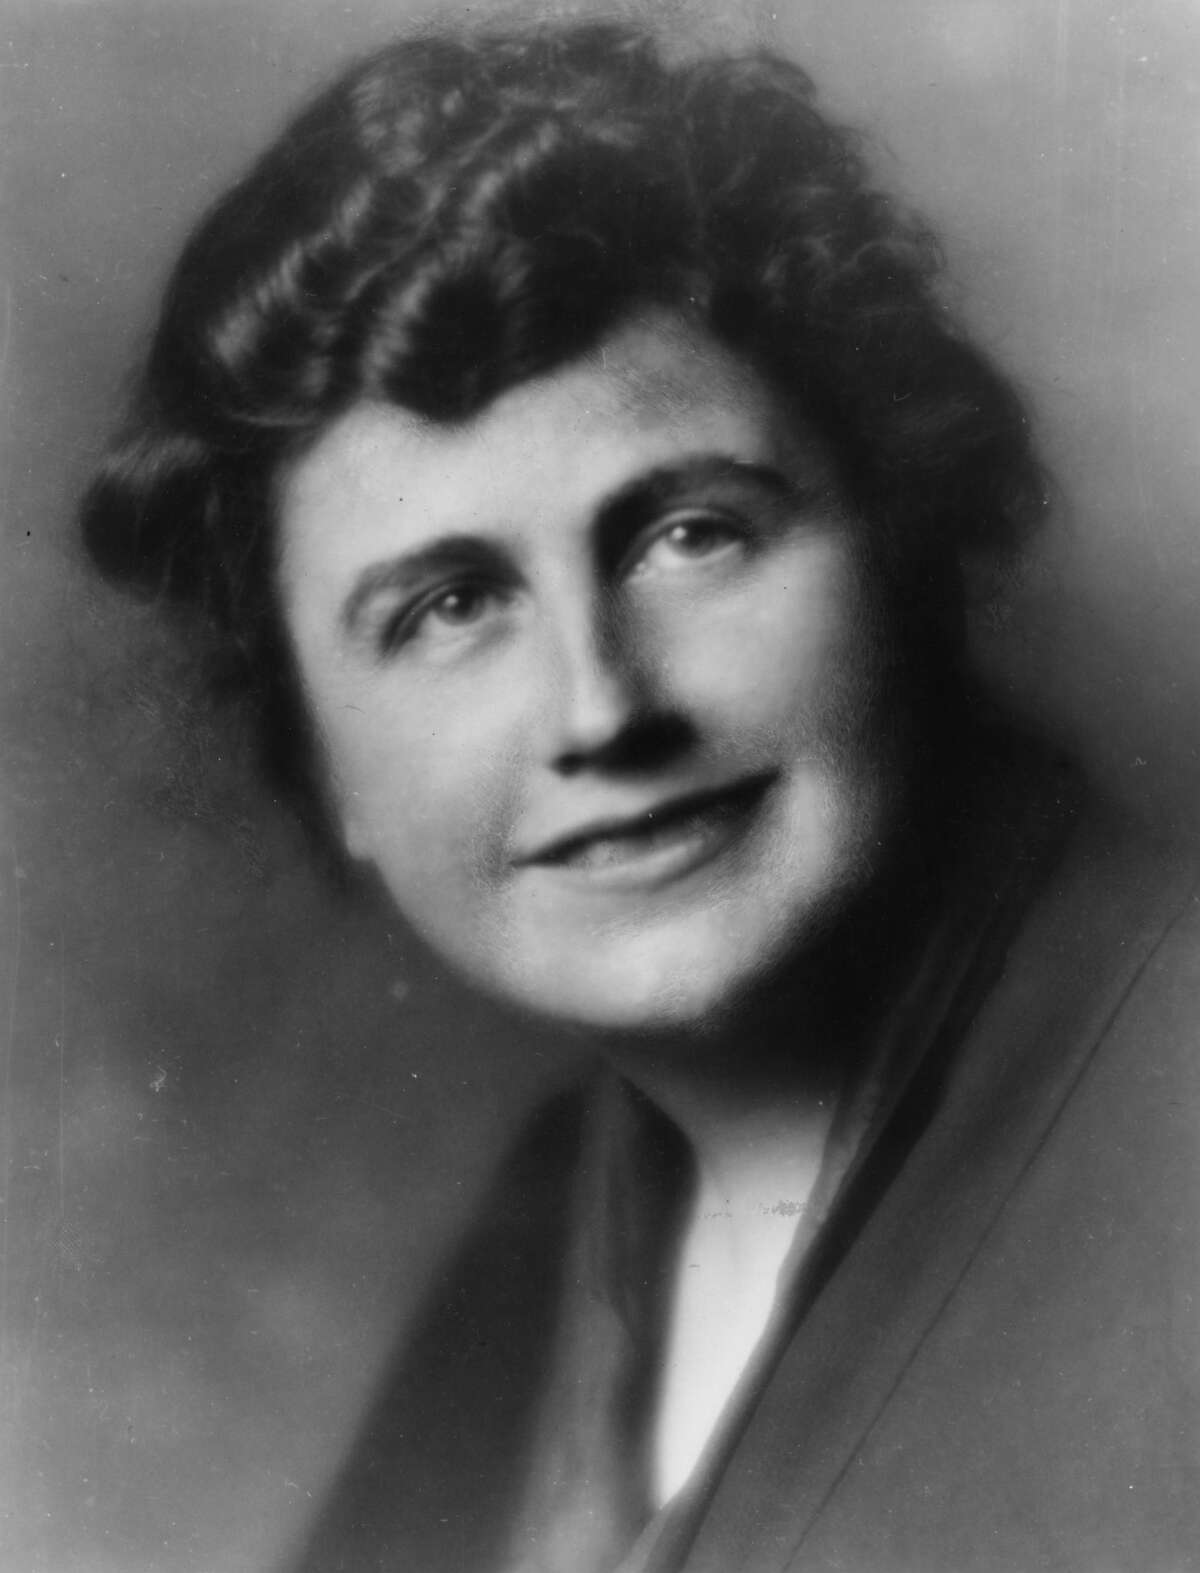 First Lady: Edith Bolling Galt Wilson (Oct. 15, 1872- Dec. 28, 1961) President:Woodrow Wilson (28) (March04, 1913-March 04, 1921) Age at Inauguration: 43 years, 2 months